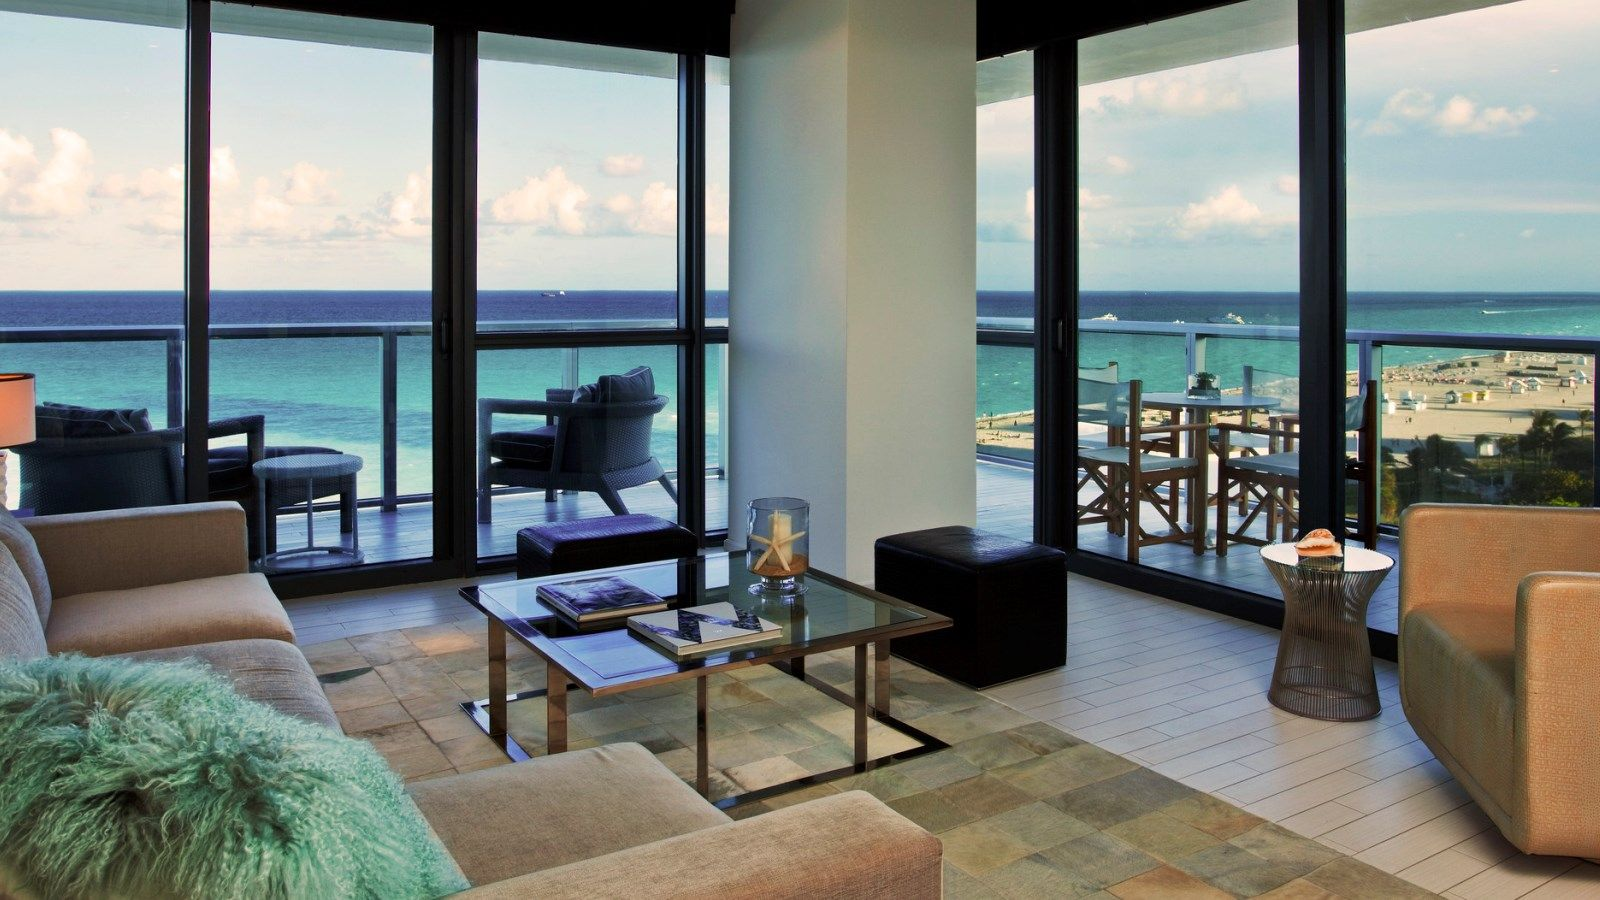 Cool Corner Oceanfront Suite with balcony